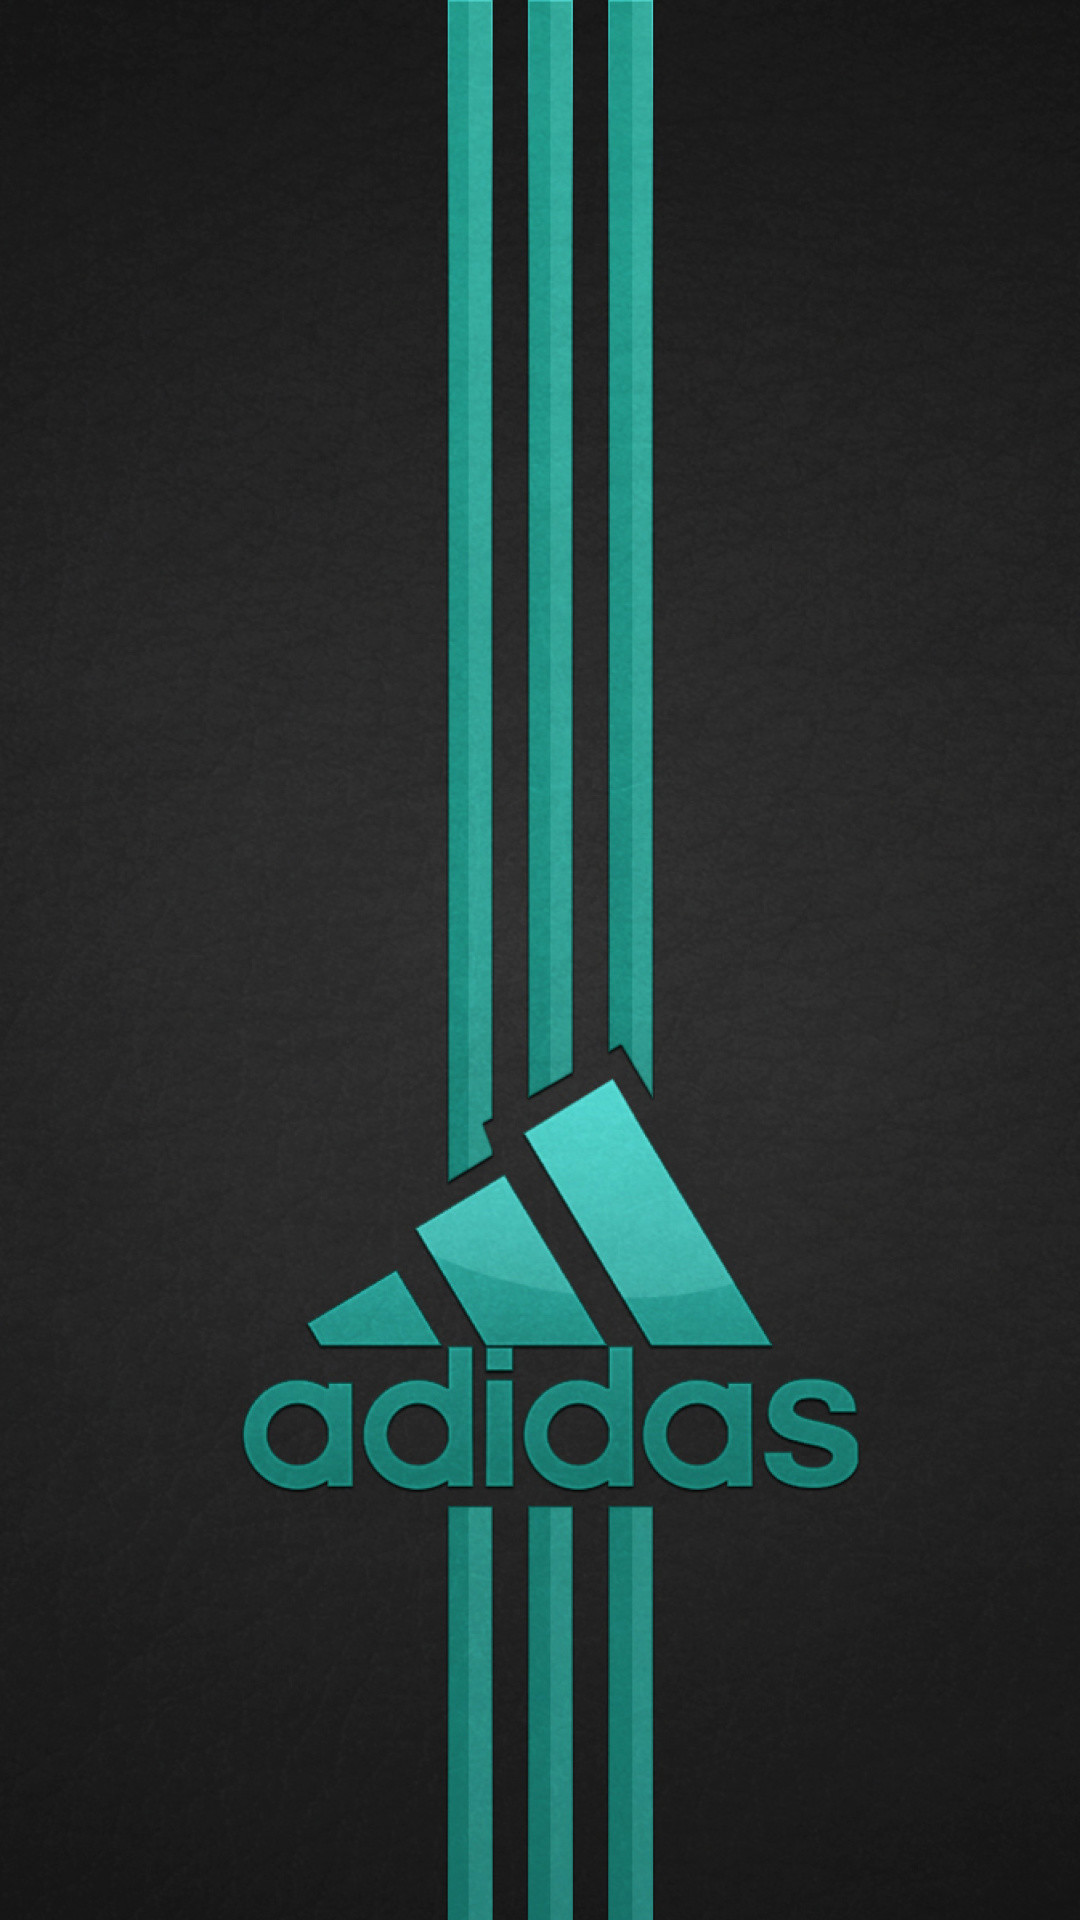 78 Adidas Iphone Wallpapers on WallpaperPlay 1080x1920